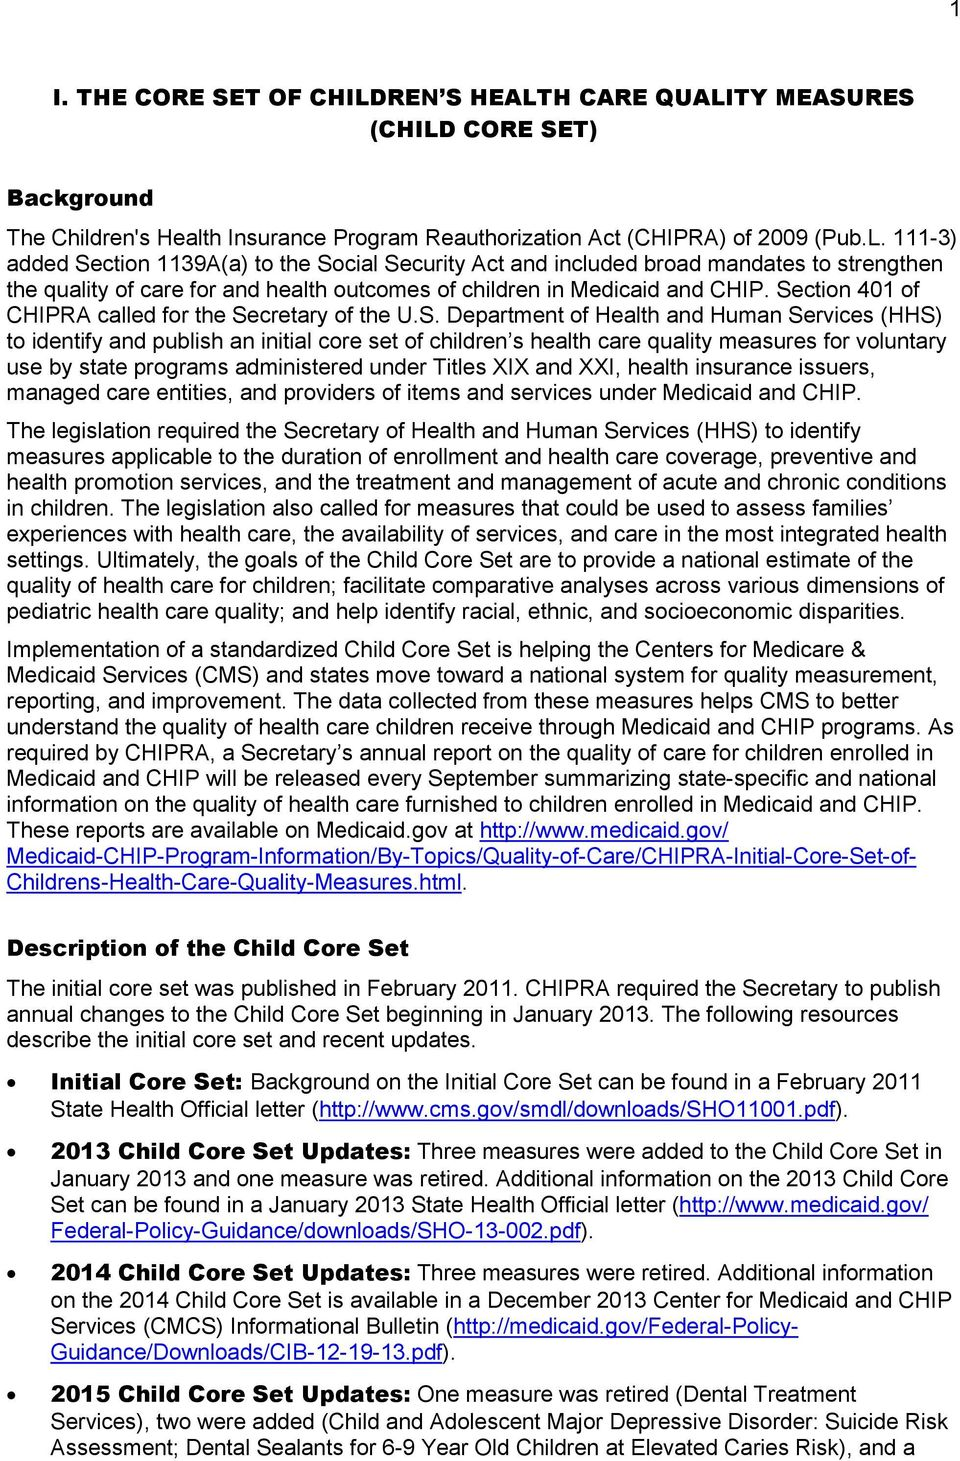 Section 401 of CHIPRA called for the Secretary of the U.S. Department of Health and Human Services (HHS) to identify and publish an initial core set of children s health care quality measures for